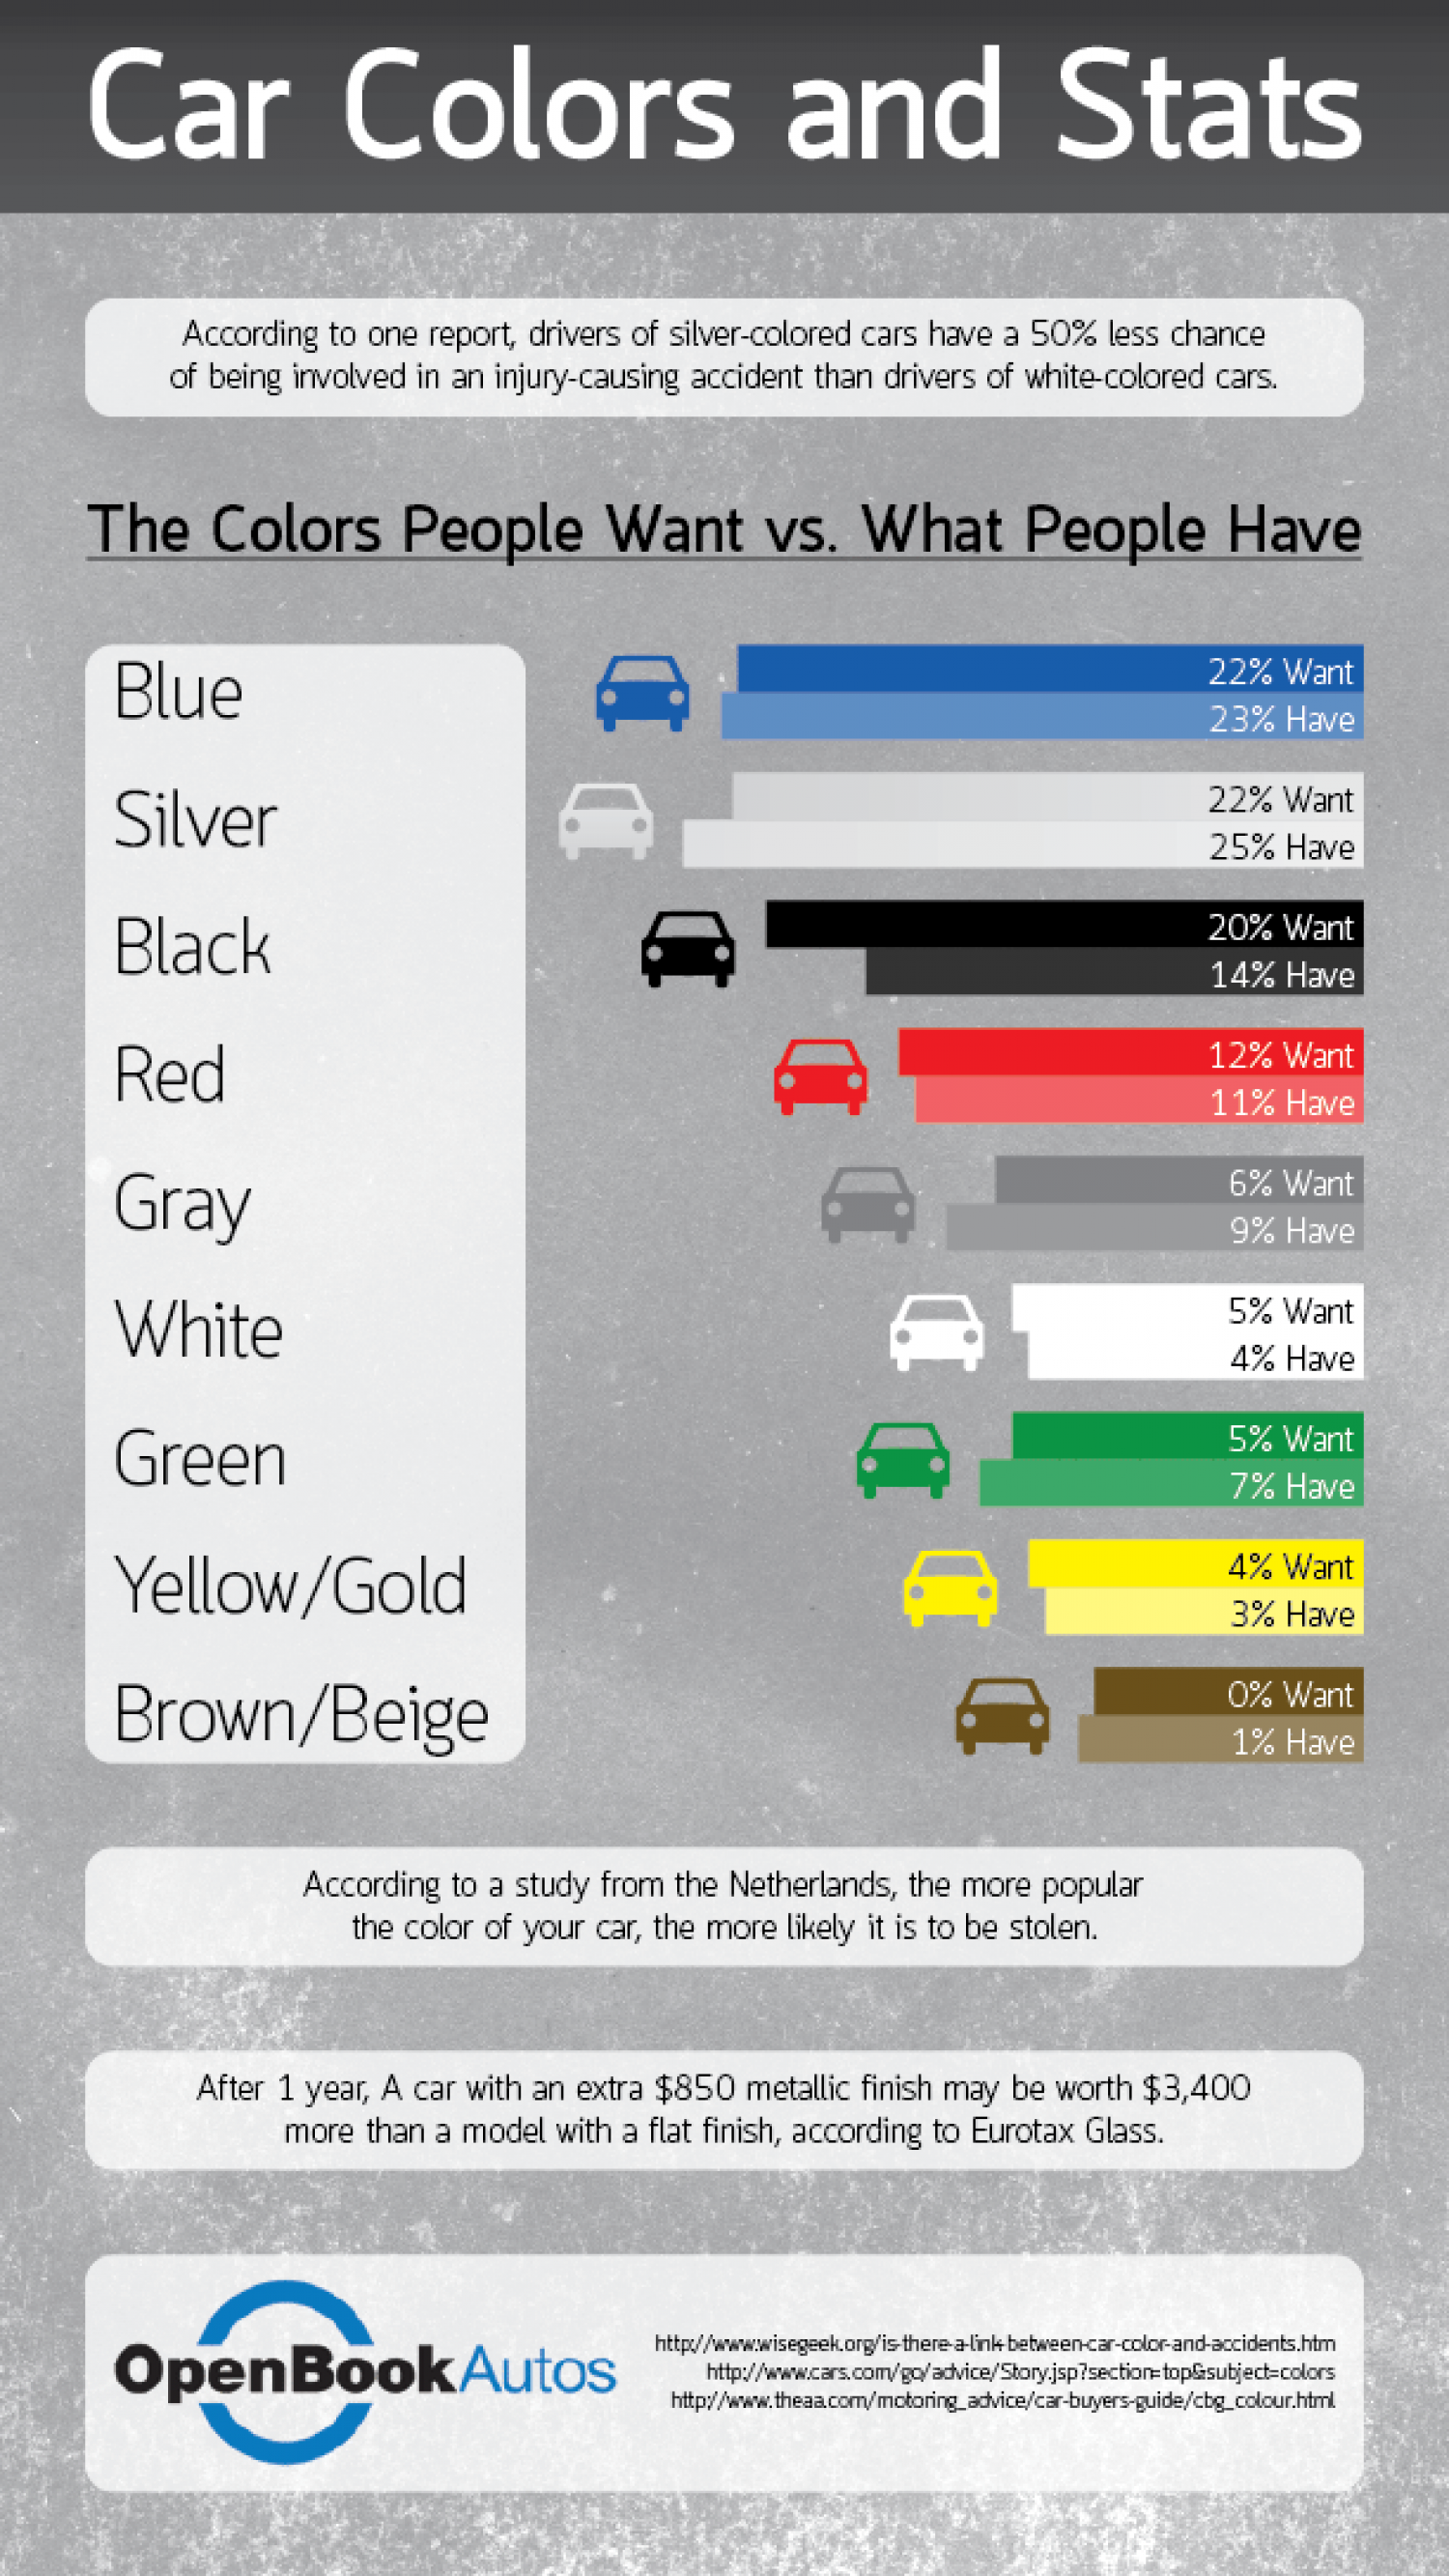 Car Colors and Stats Infographic